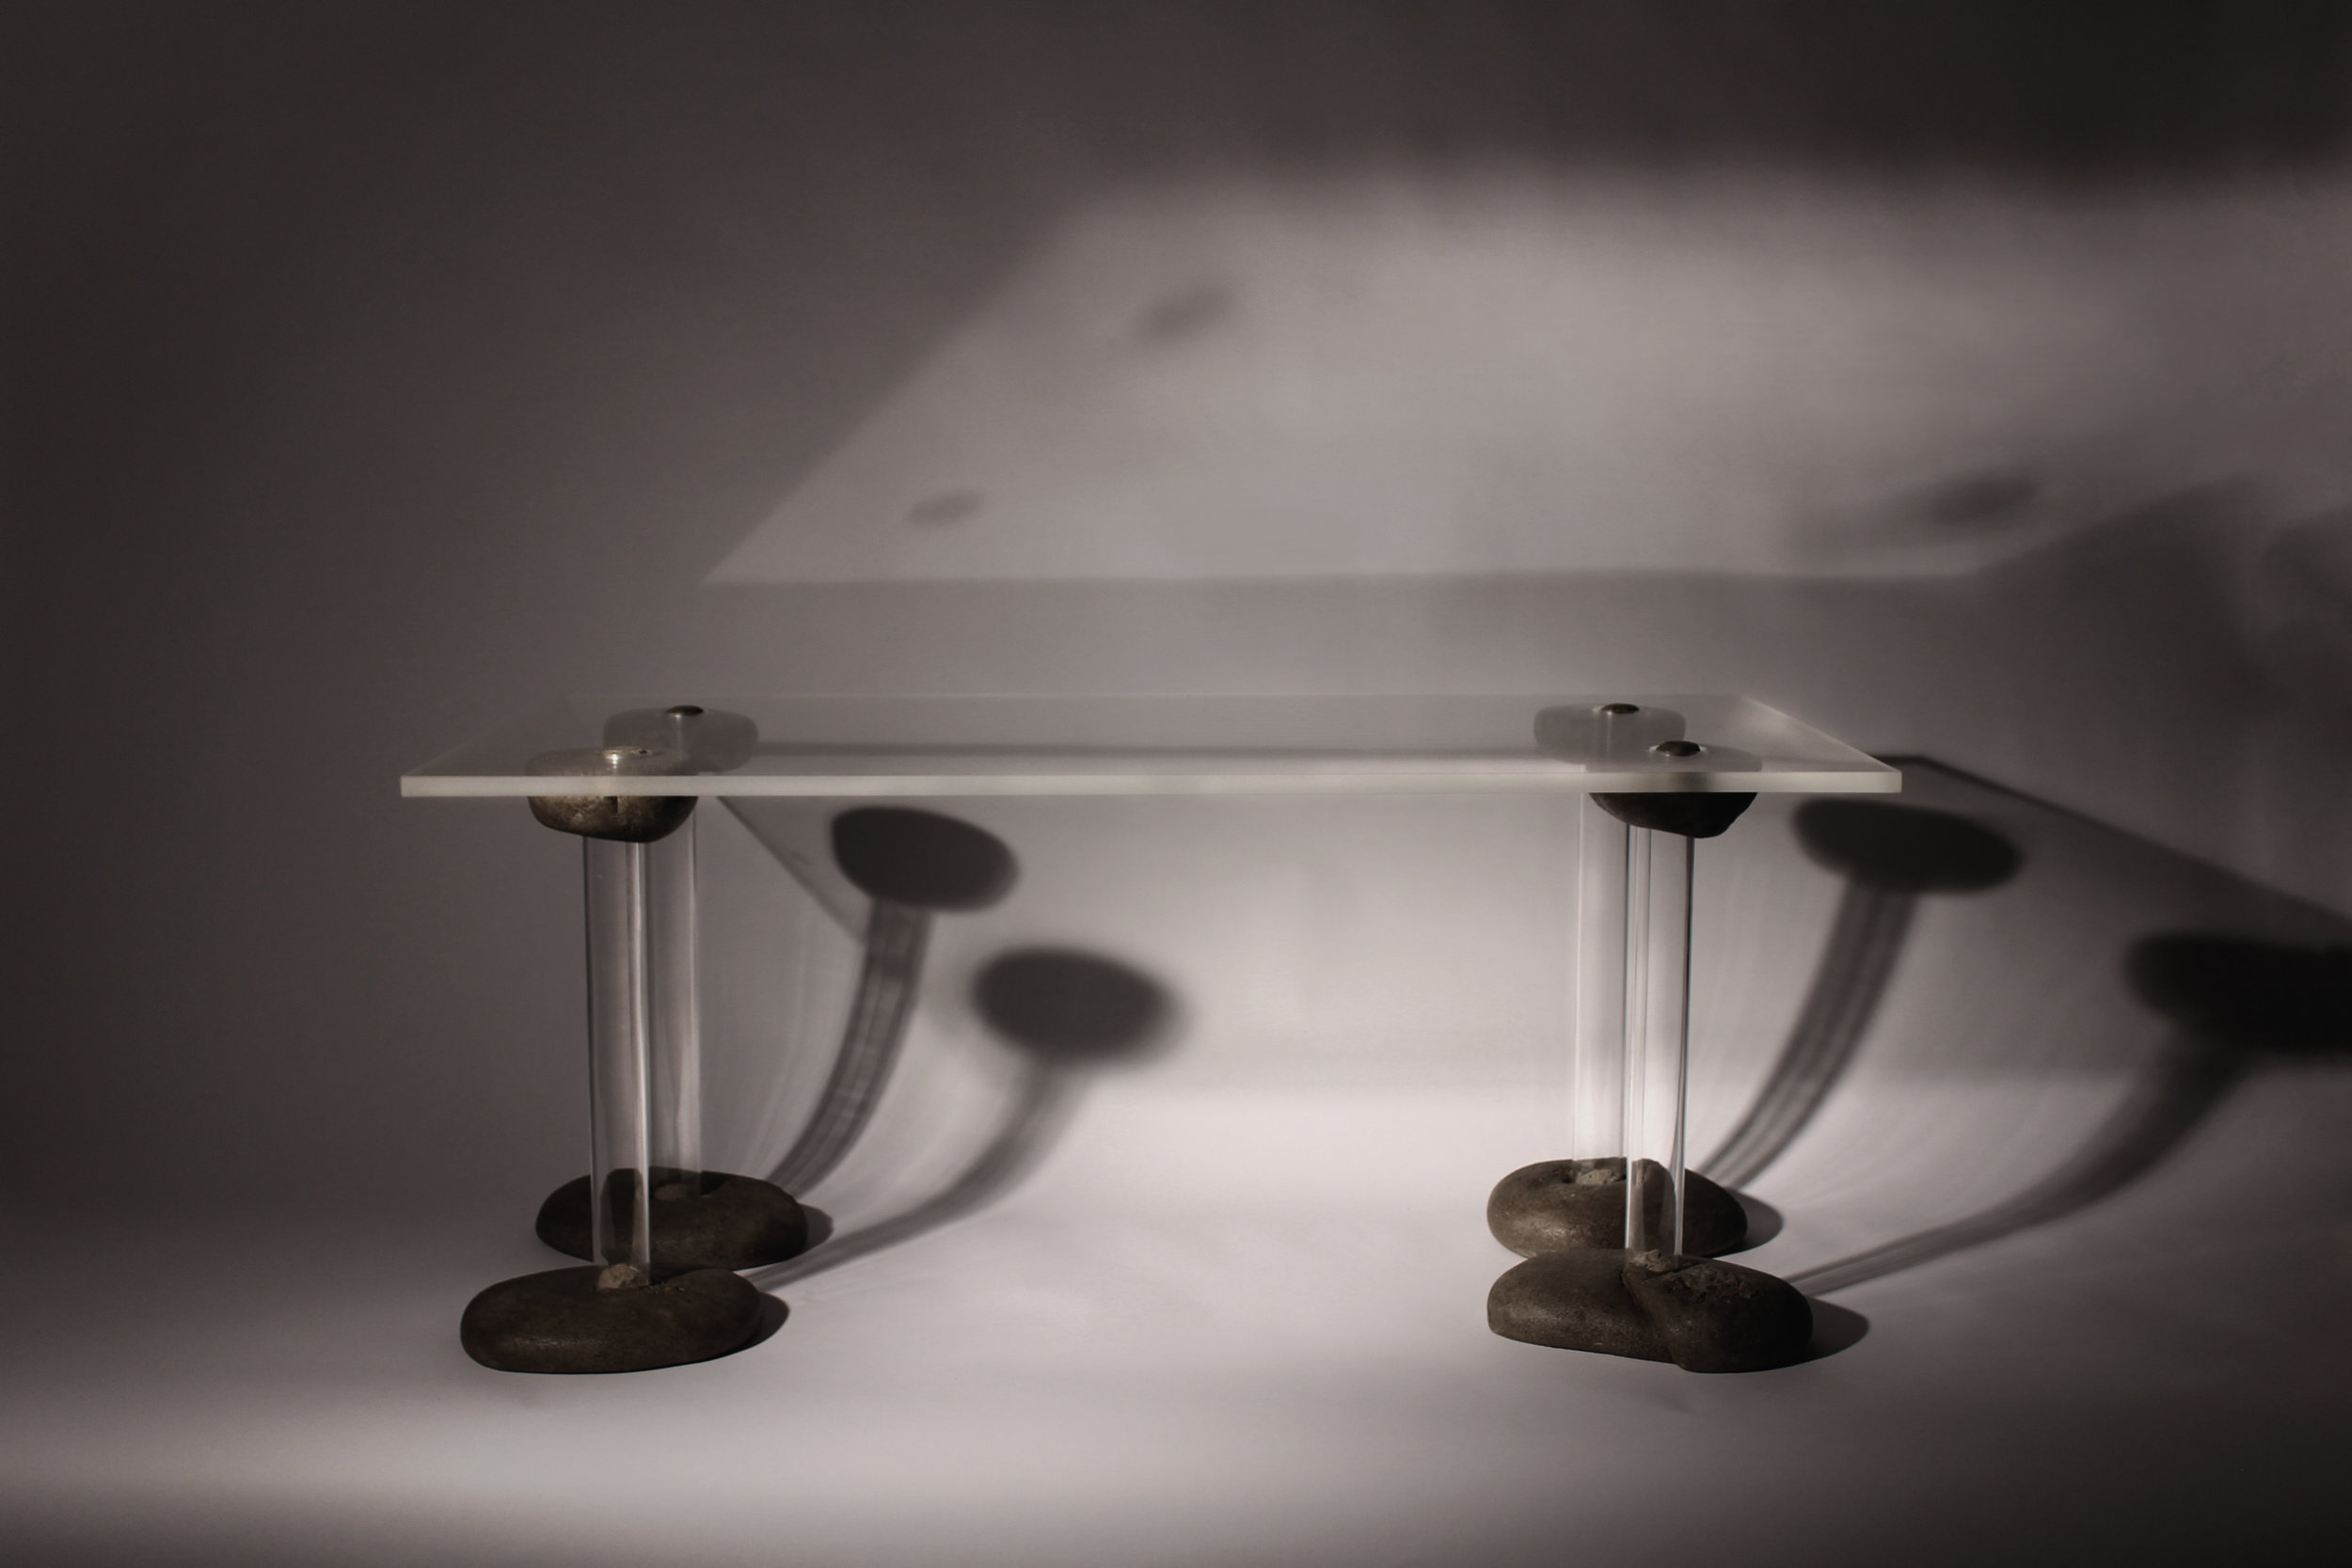 The plexiglass tabletop is held to the legs with fabric-formed joint pieces which create a removable form joint